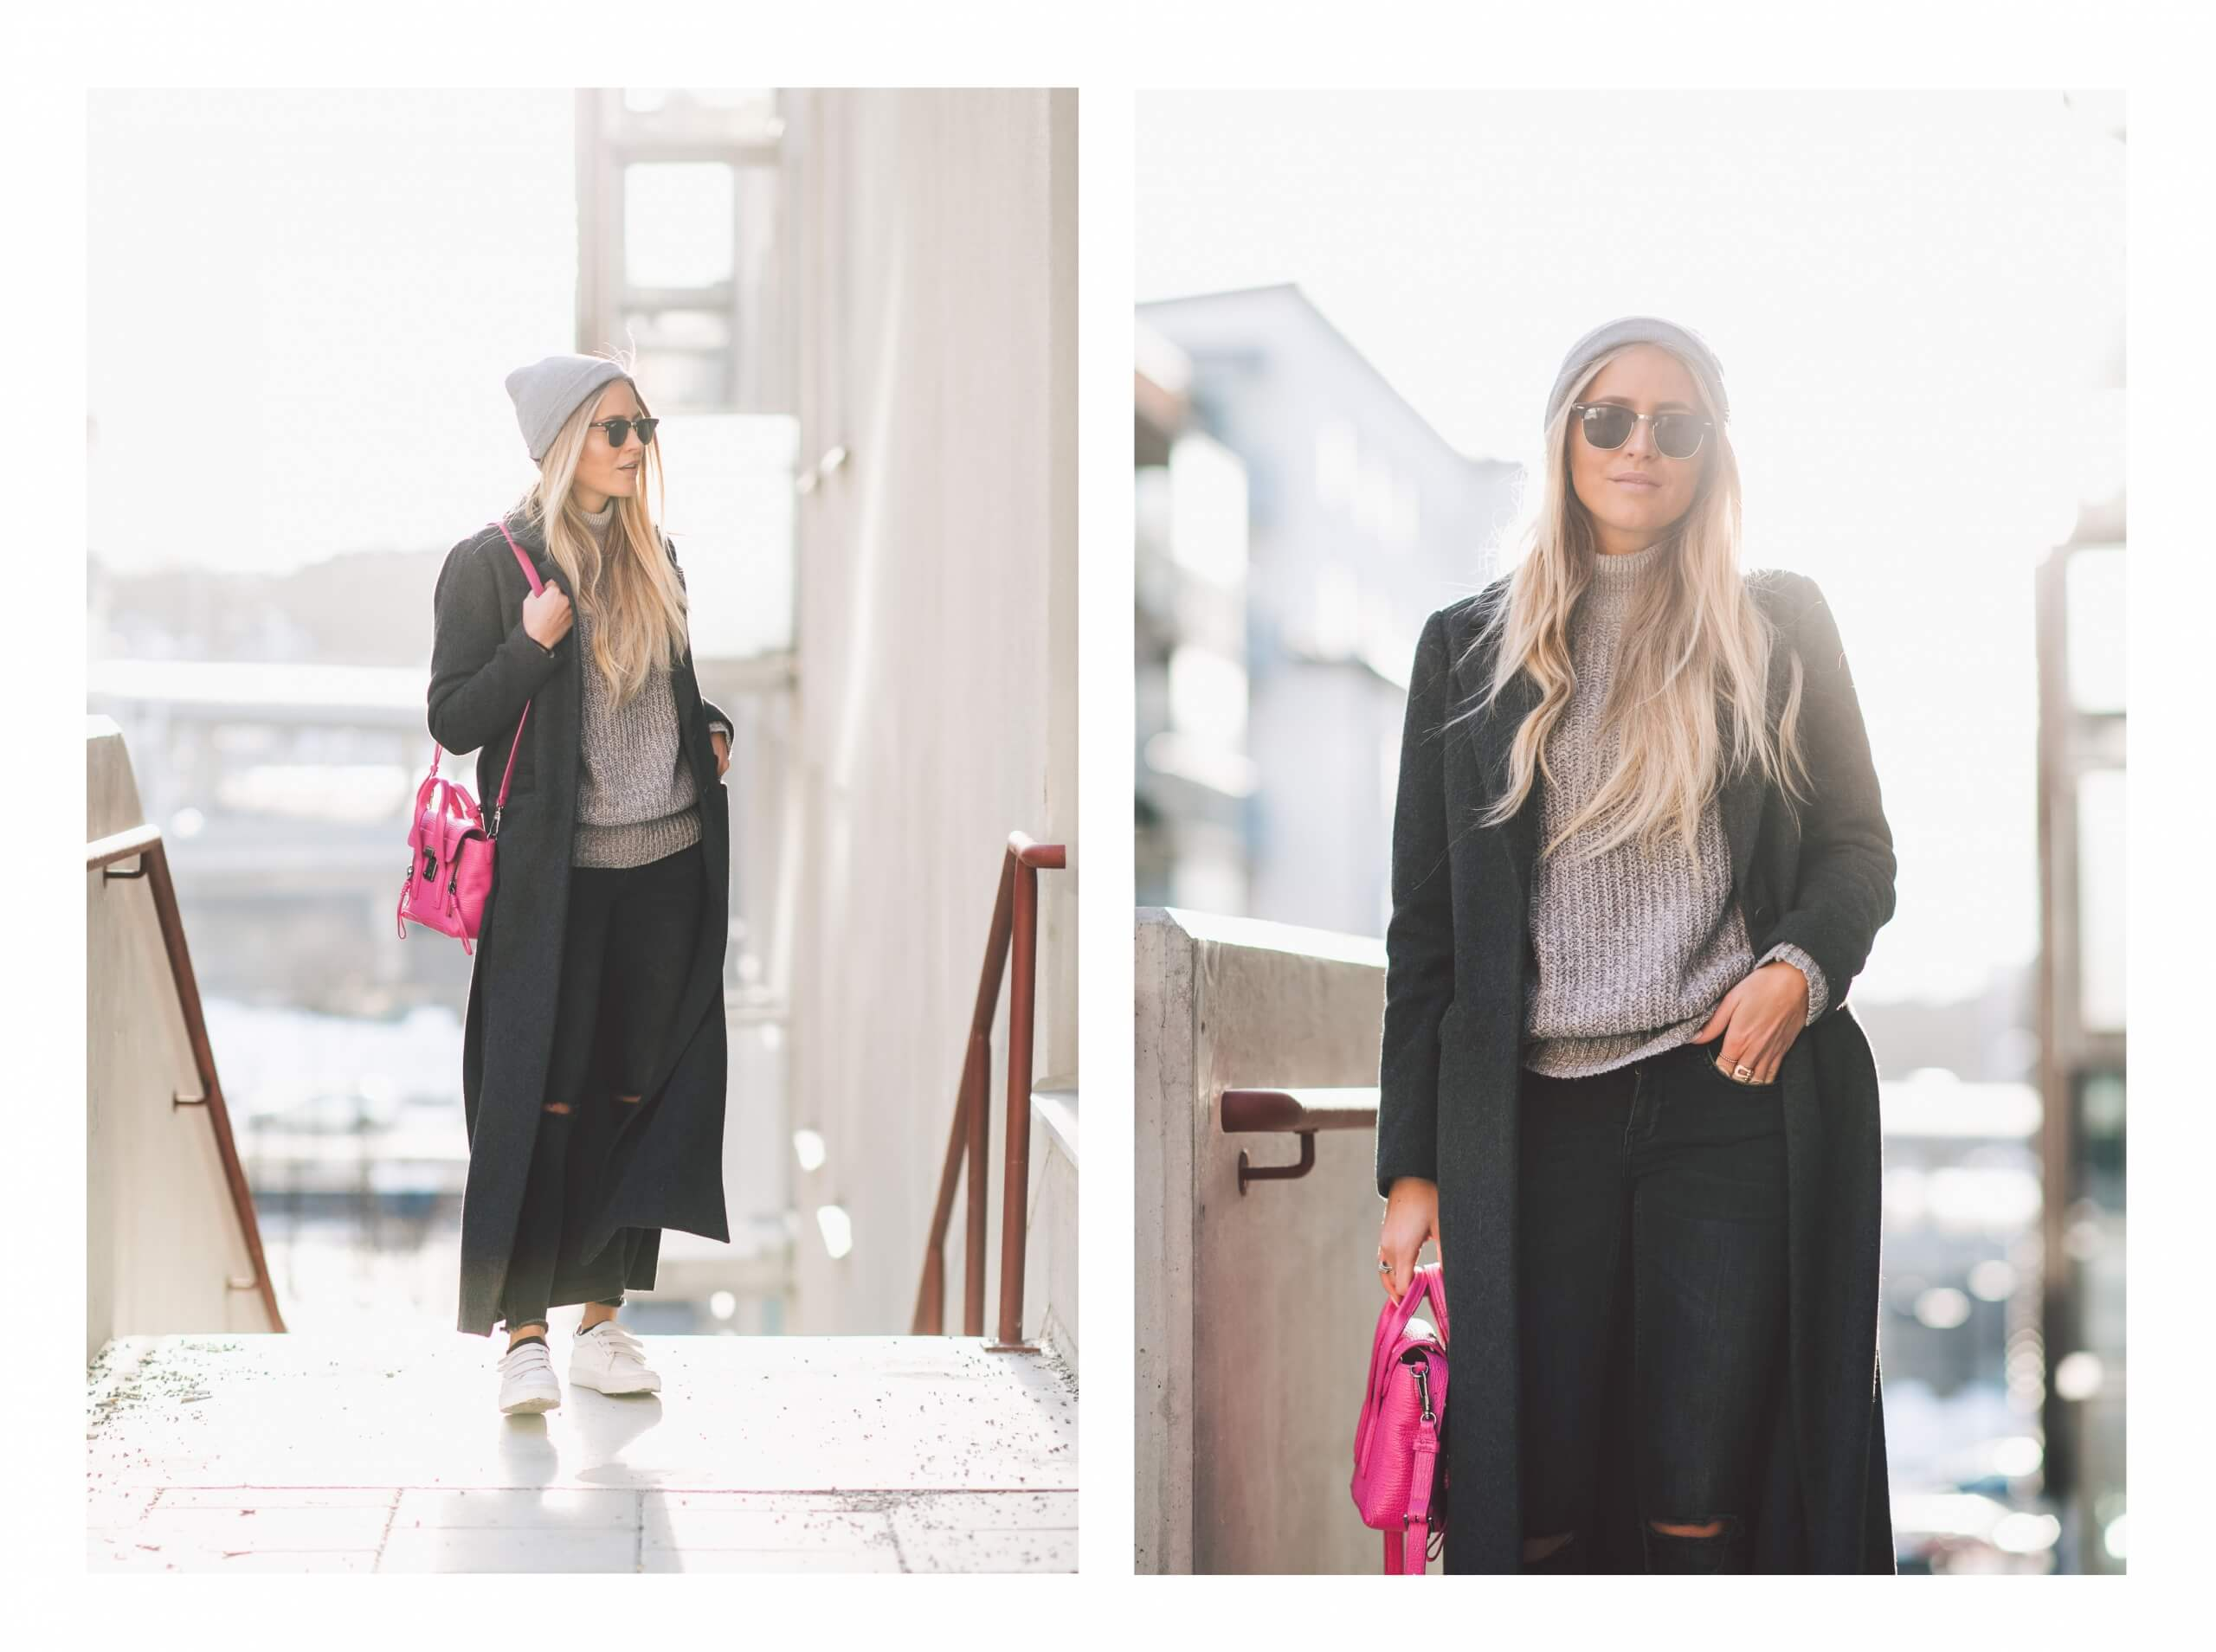 janni-deler-grey-outfitDSC_8297 copy